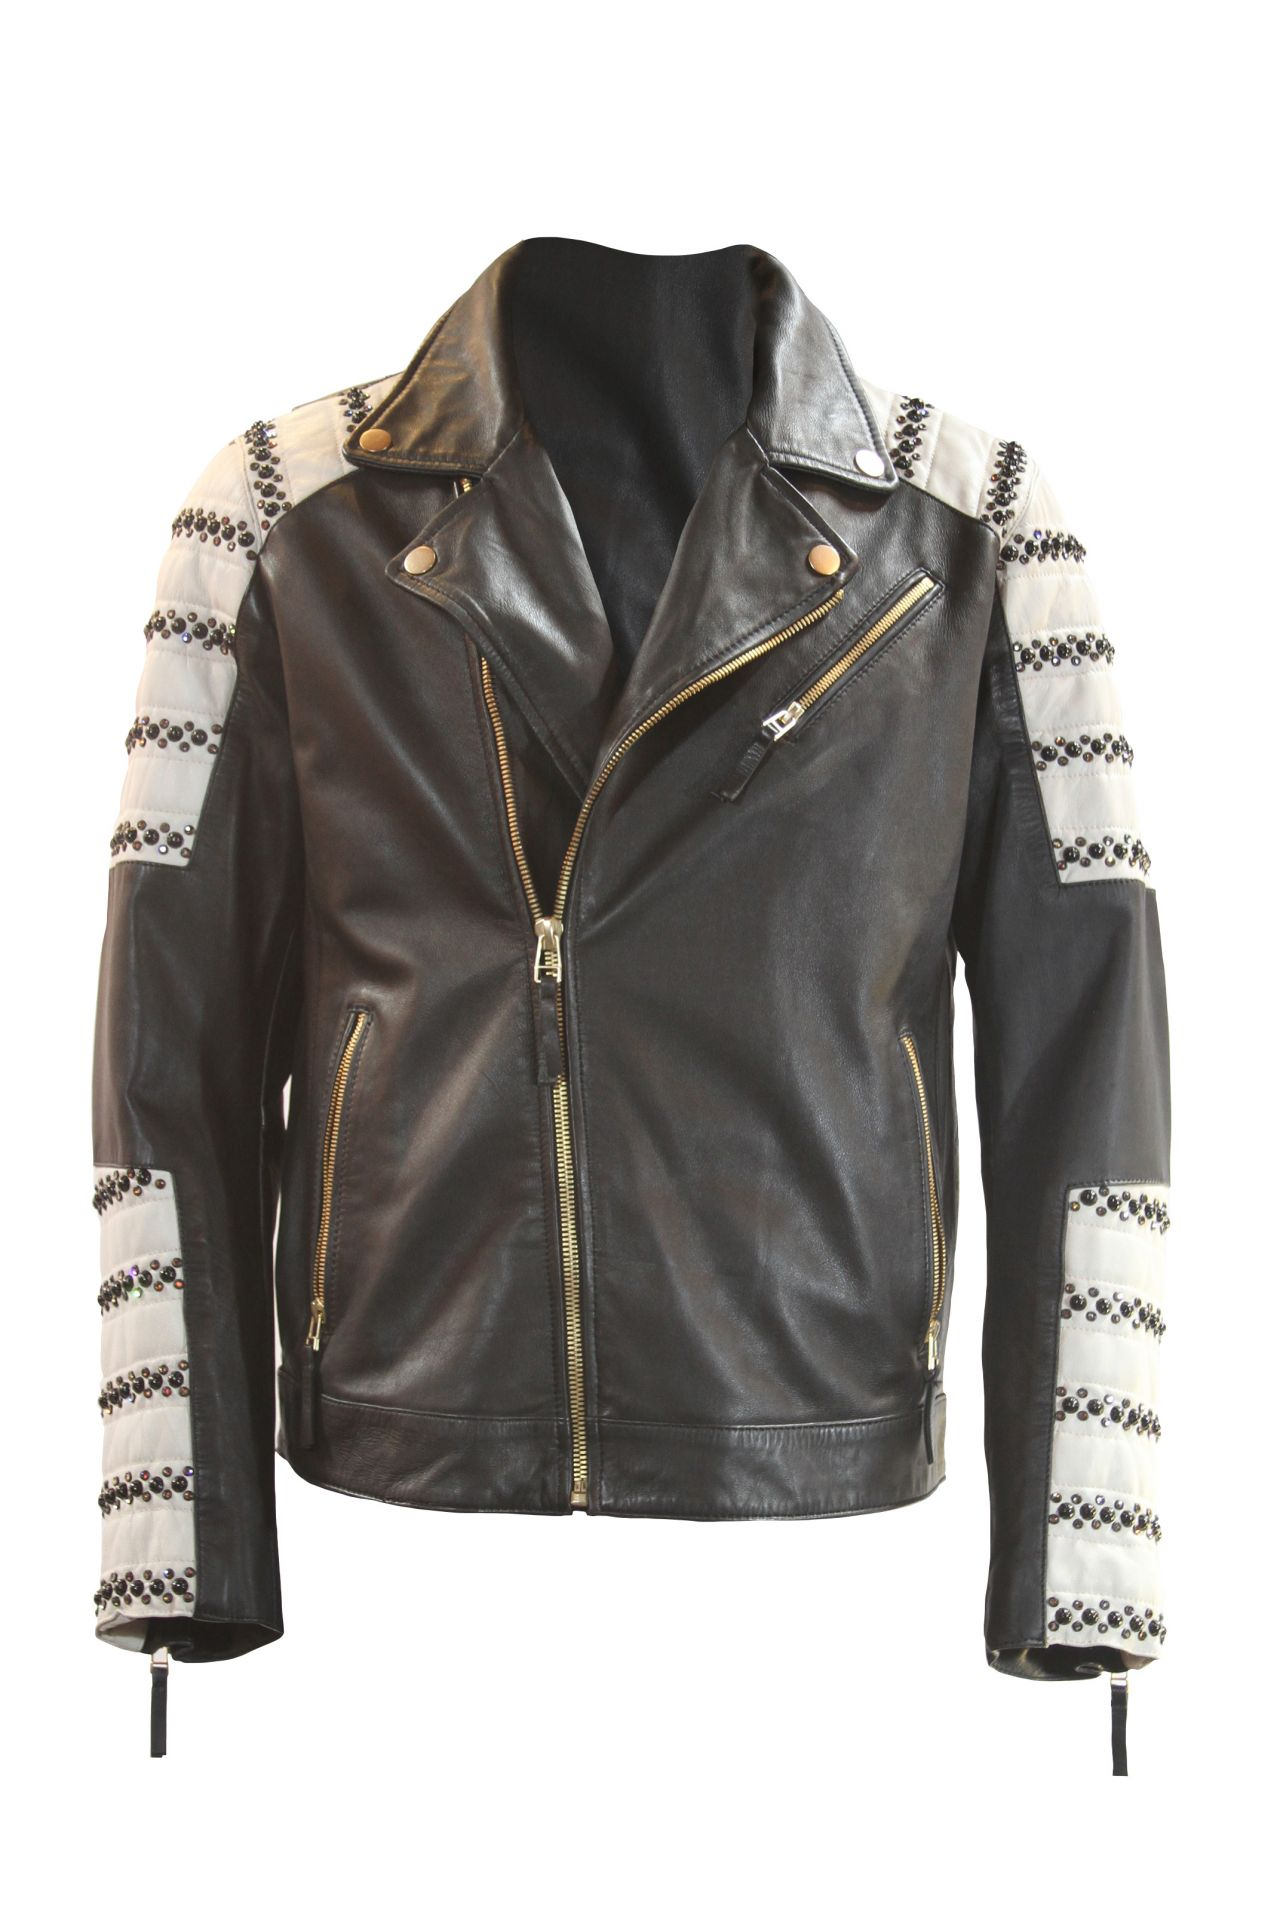 STUDDED LEATHER JACKET IN BLACK AND WHITE